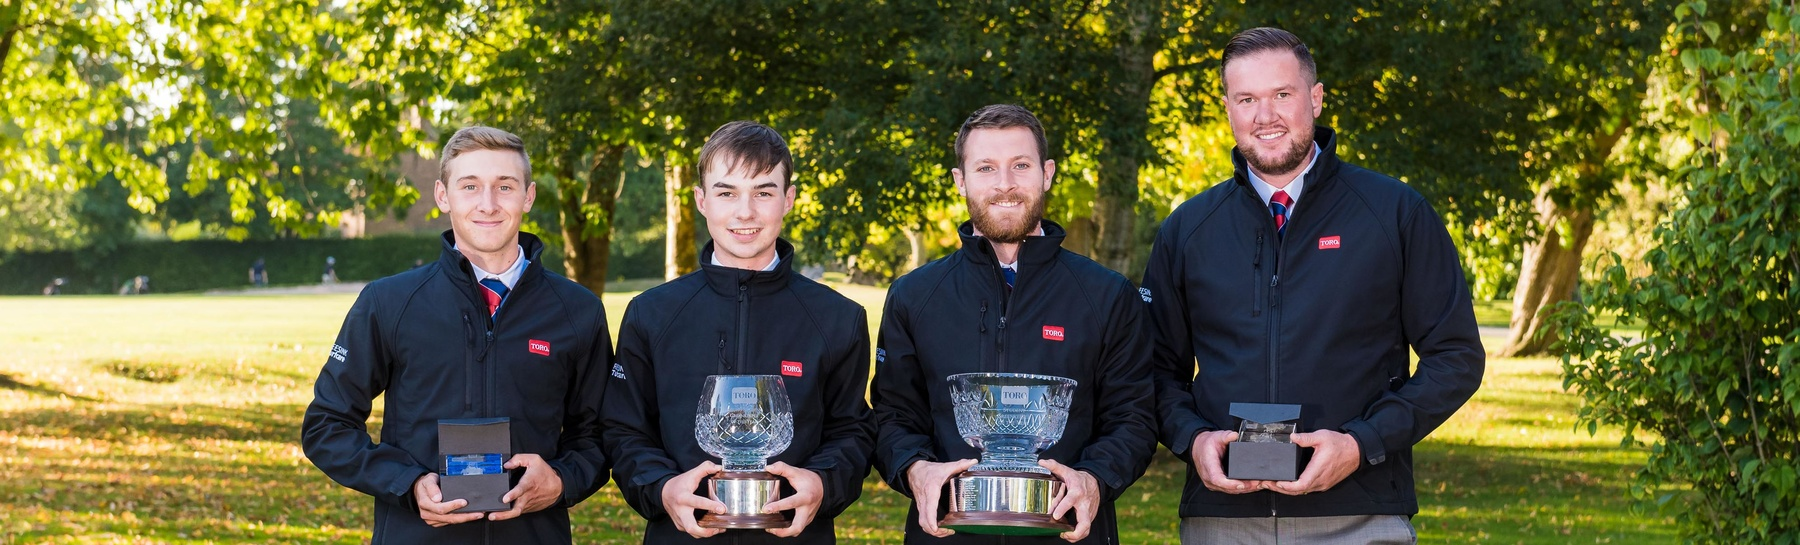 The prize winners and runners-up from 2018 cropwere Liam Pigden, Danny Patten, Daniel Ashelby and John Scurfield